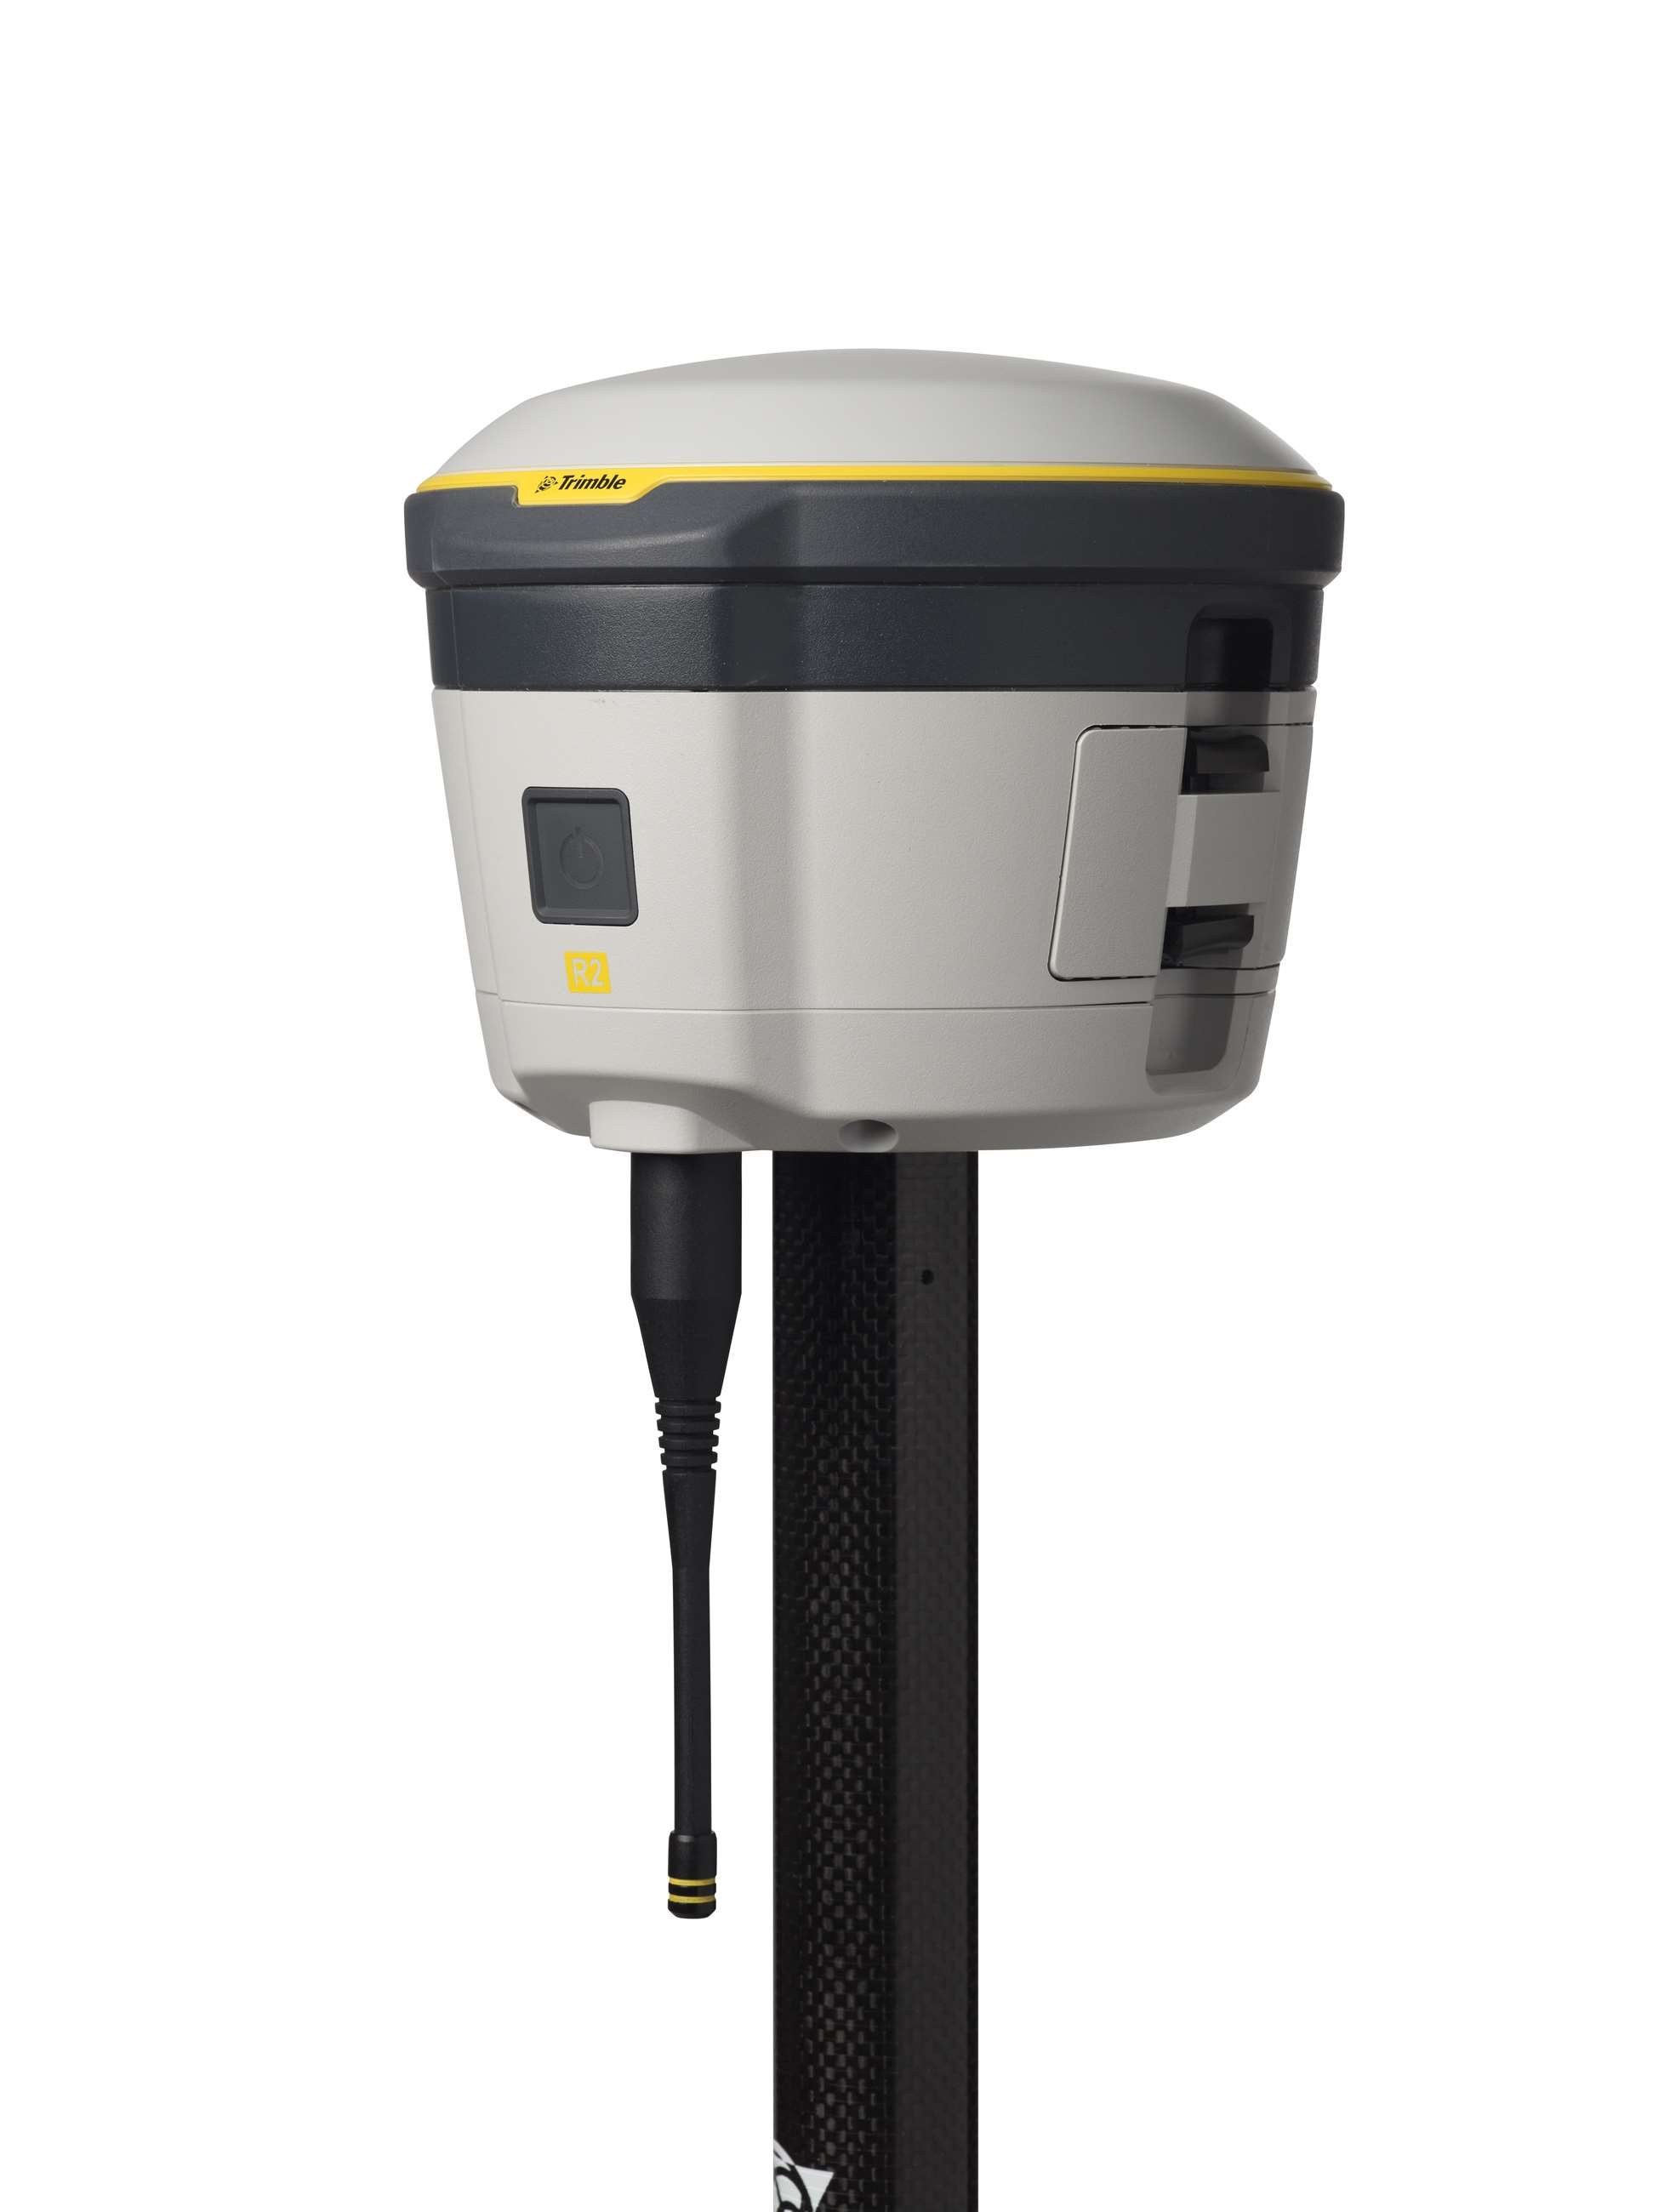 trimble r2 gnss studio closeup 450 left_300